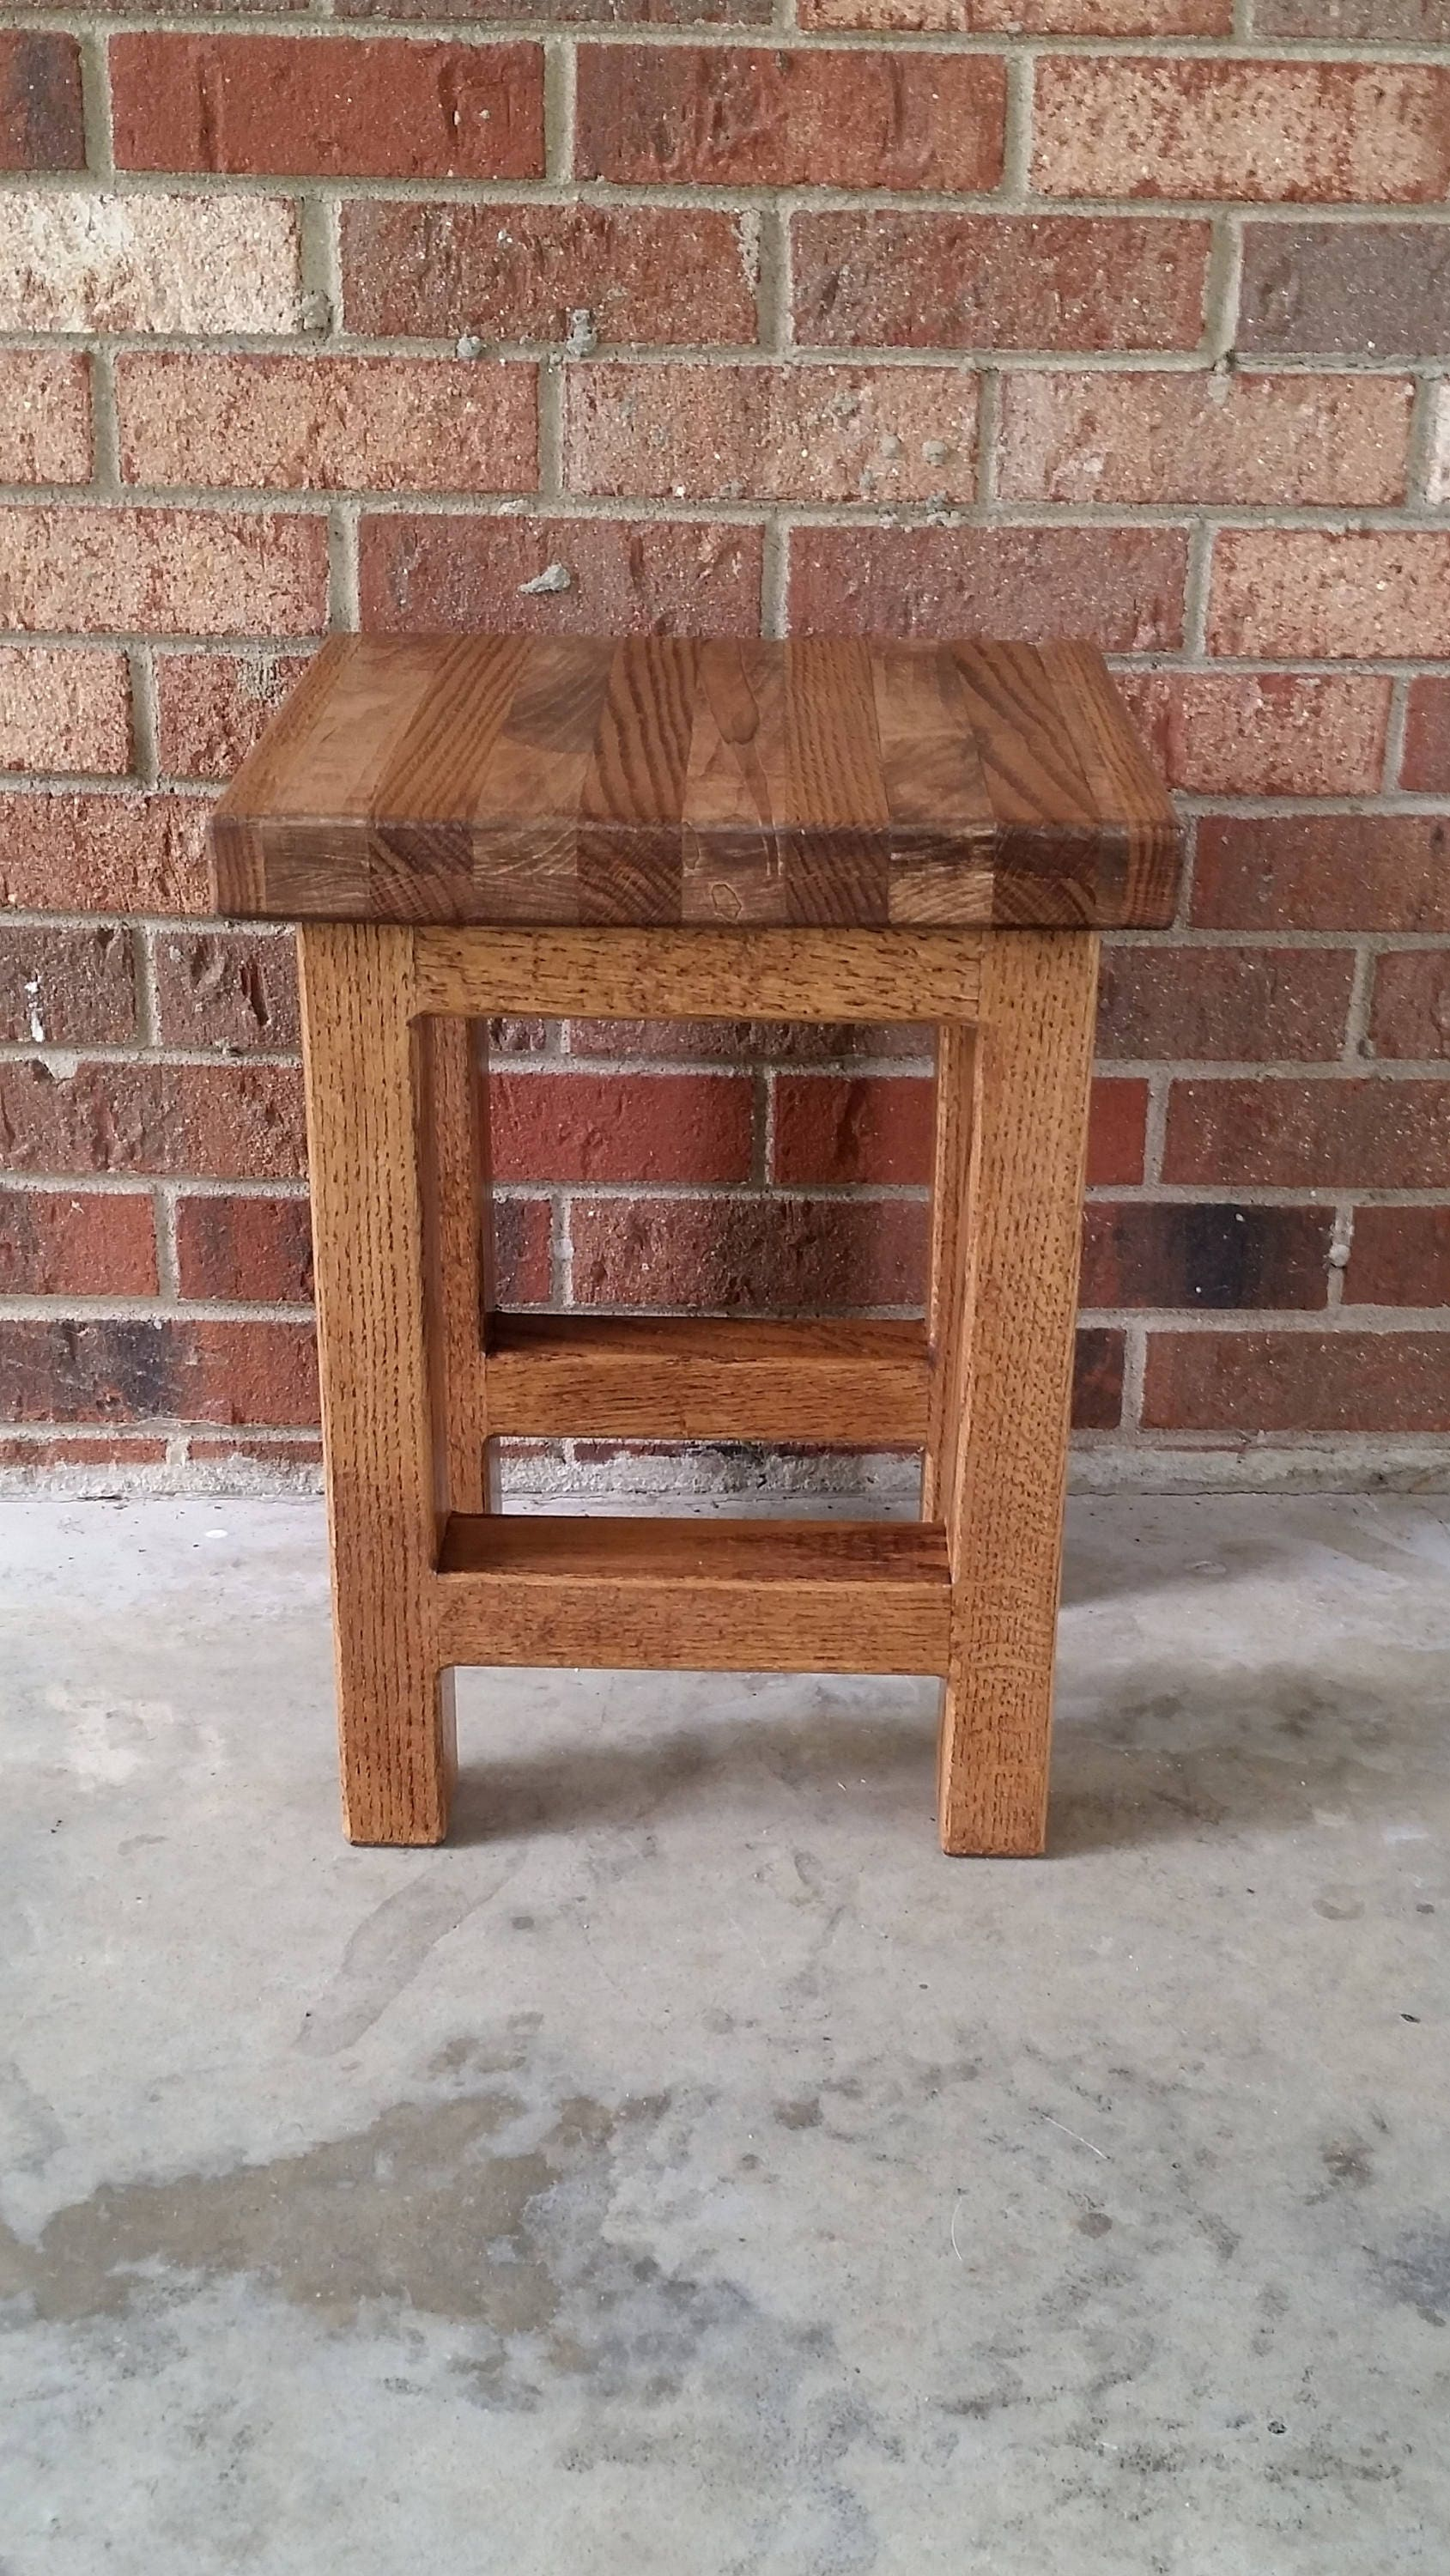 Stool Bedside Table: Wood Stool, Wood Side Table, Rustic Wood Stool, Reclaimed